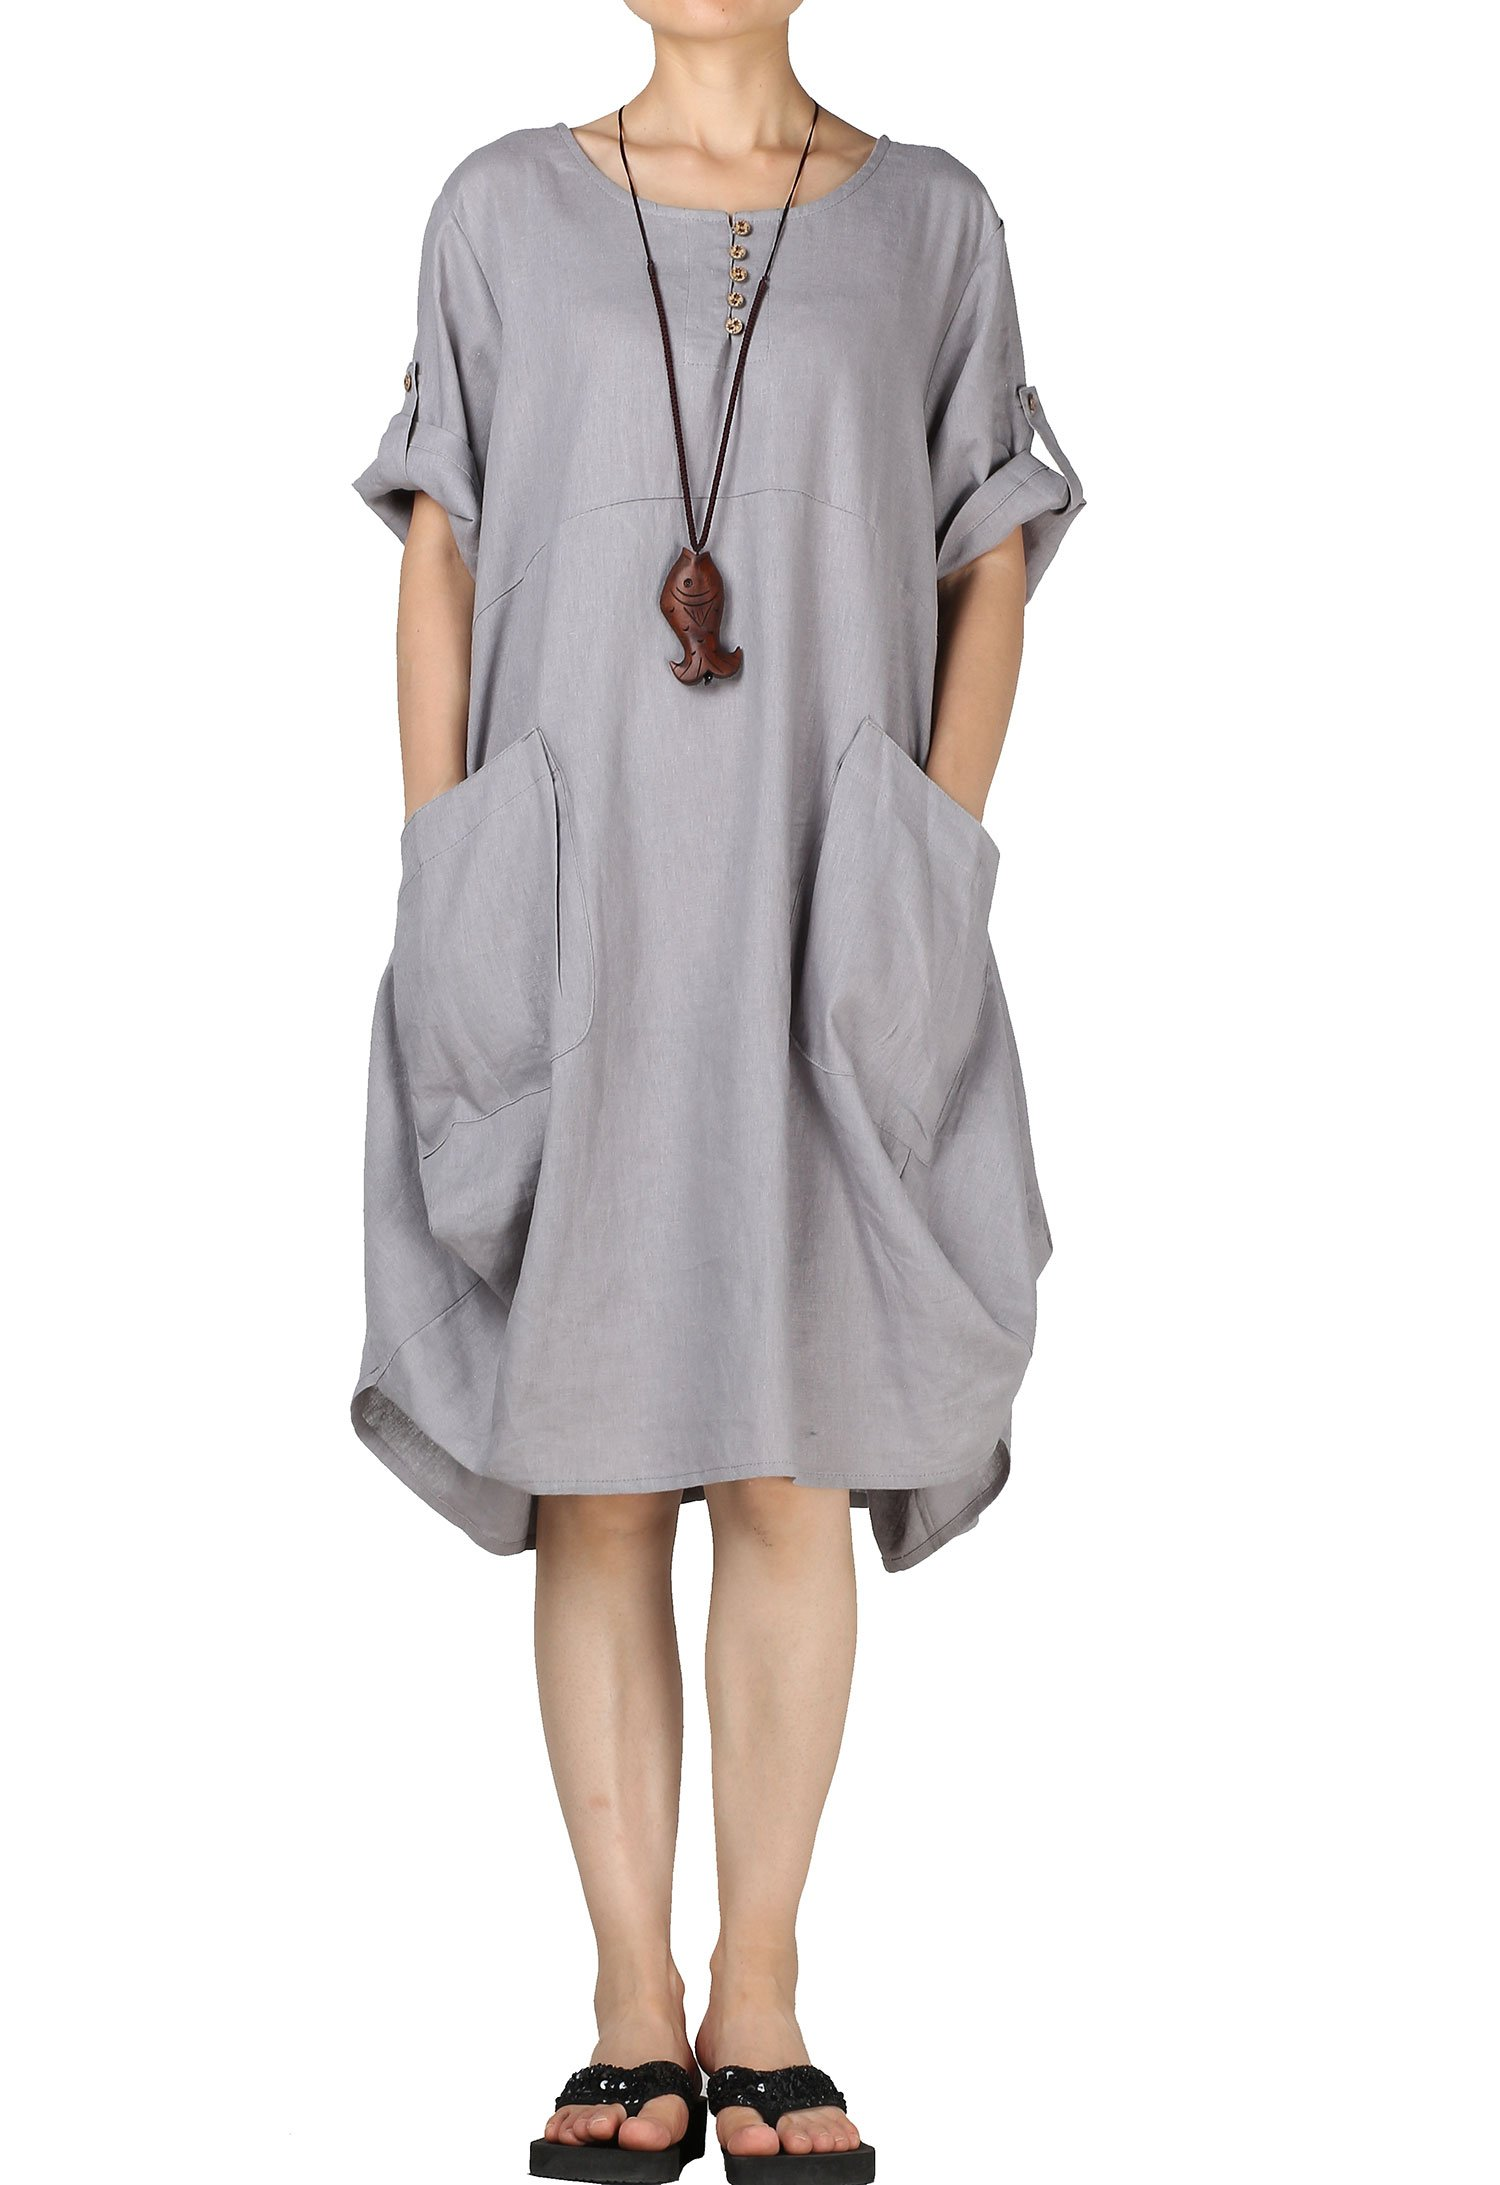 Mordenmiss Women's Summer Roll-up Sleeve Baggy Dress with Pockets L Gray